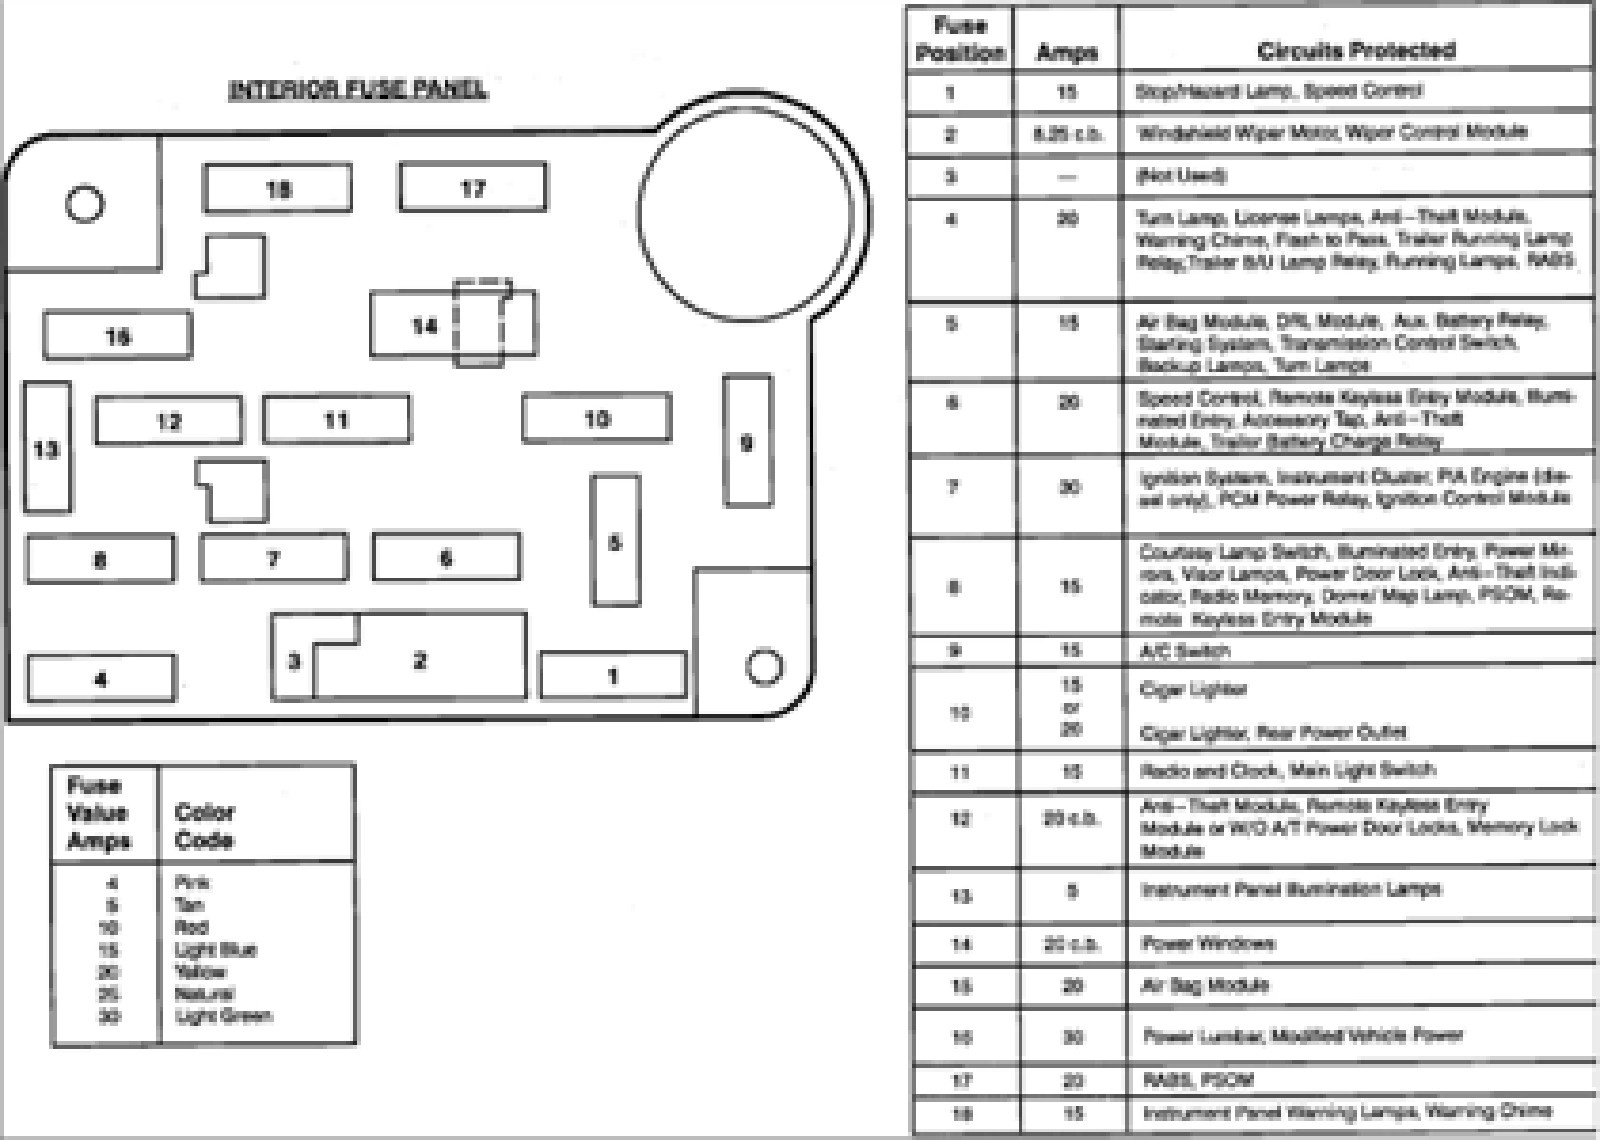 pic 8862473225641007897 1600x1200 1989 ford ranger fuse box diagram 1994 ford ranger fuse box layout 1990 ford ranger fuse box diagram at webbmarketing.co